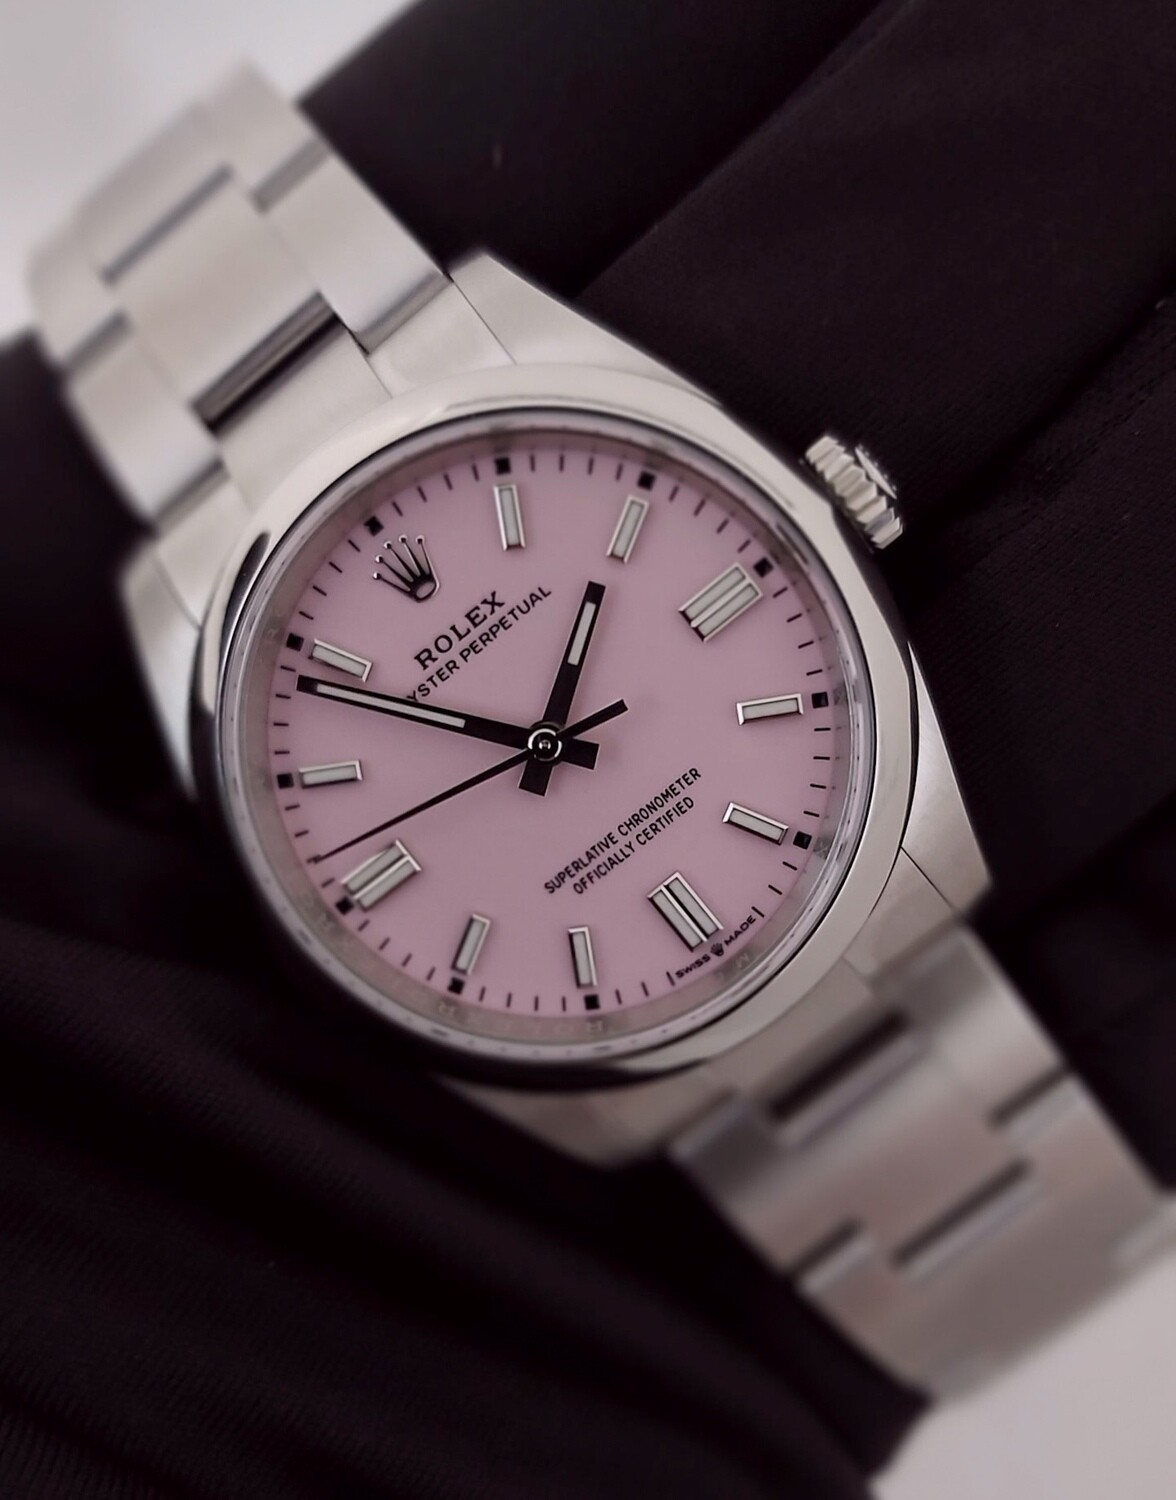 Rolex Oyster Perpetual 36 126000 Pink - New & Unworn, 2021